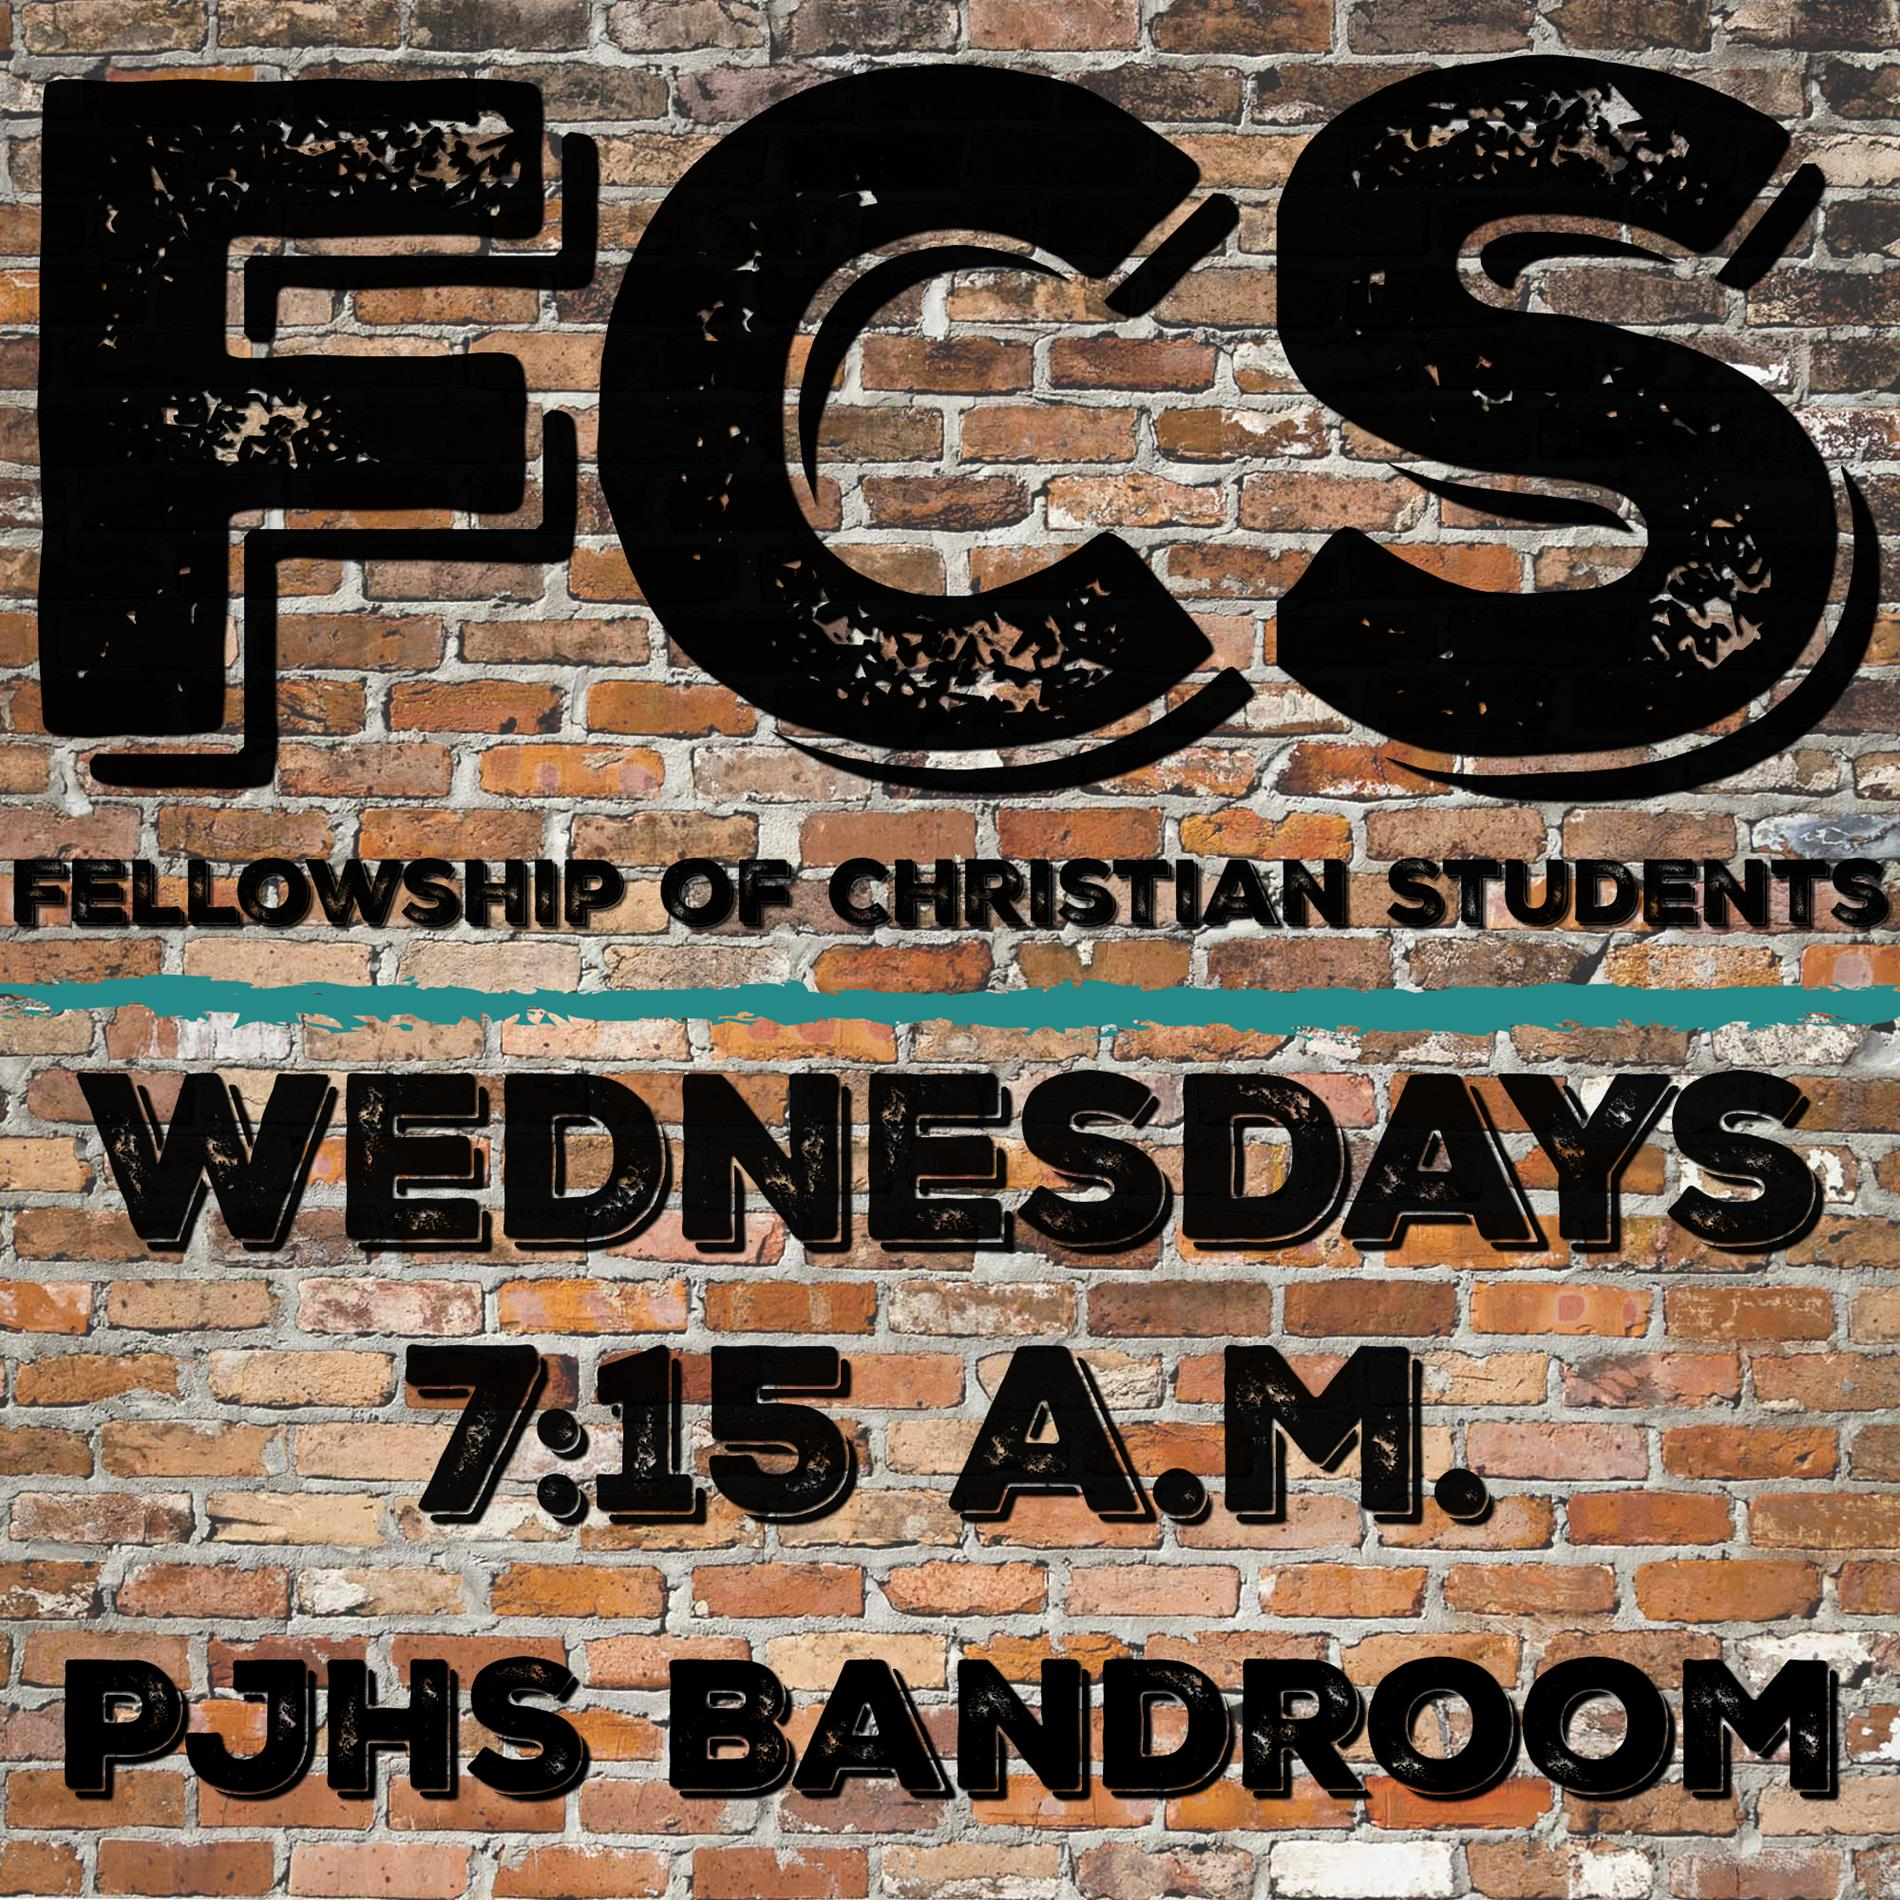 FCS (Fellowship of Christian Students)